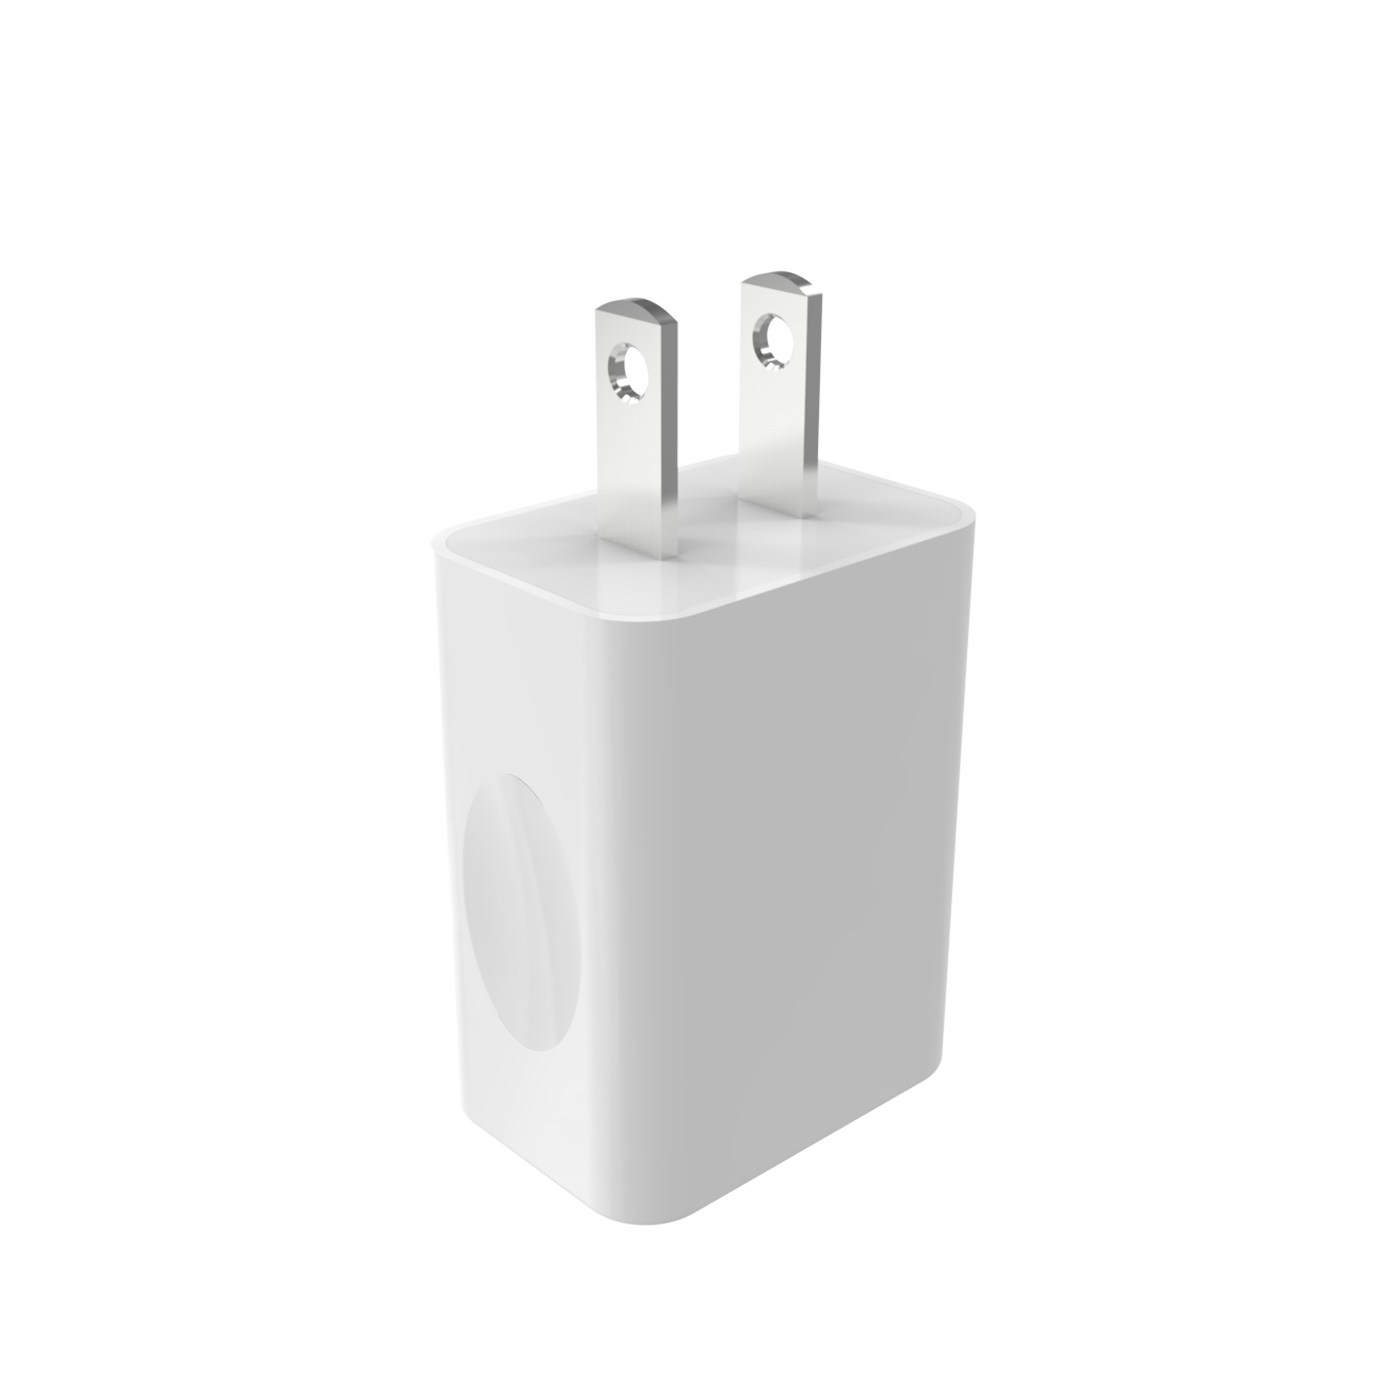 TC15-200US 5W USB Wall charger